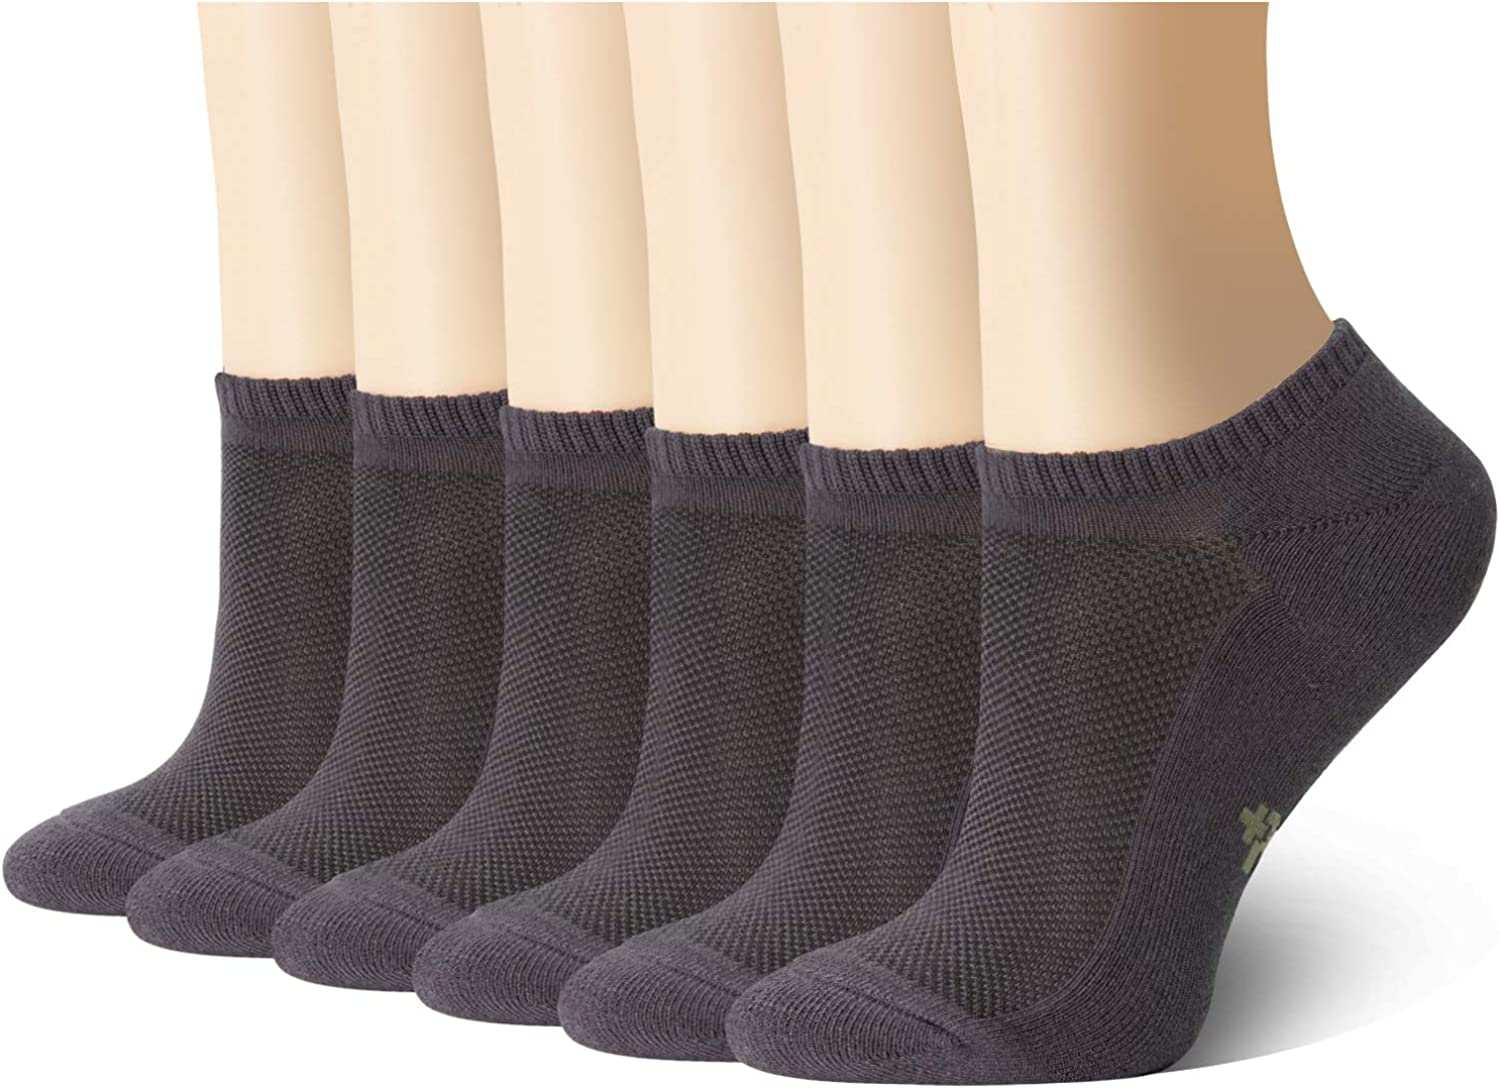 MD Ultra Soft Athletic Bamboo Socks for Women and Men with Hidden Seam Toe No Show Casual Socks 6 Pack